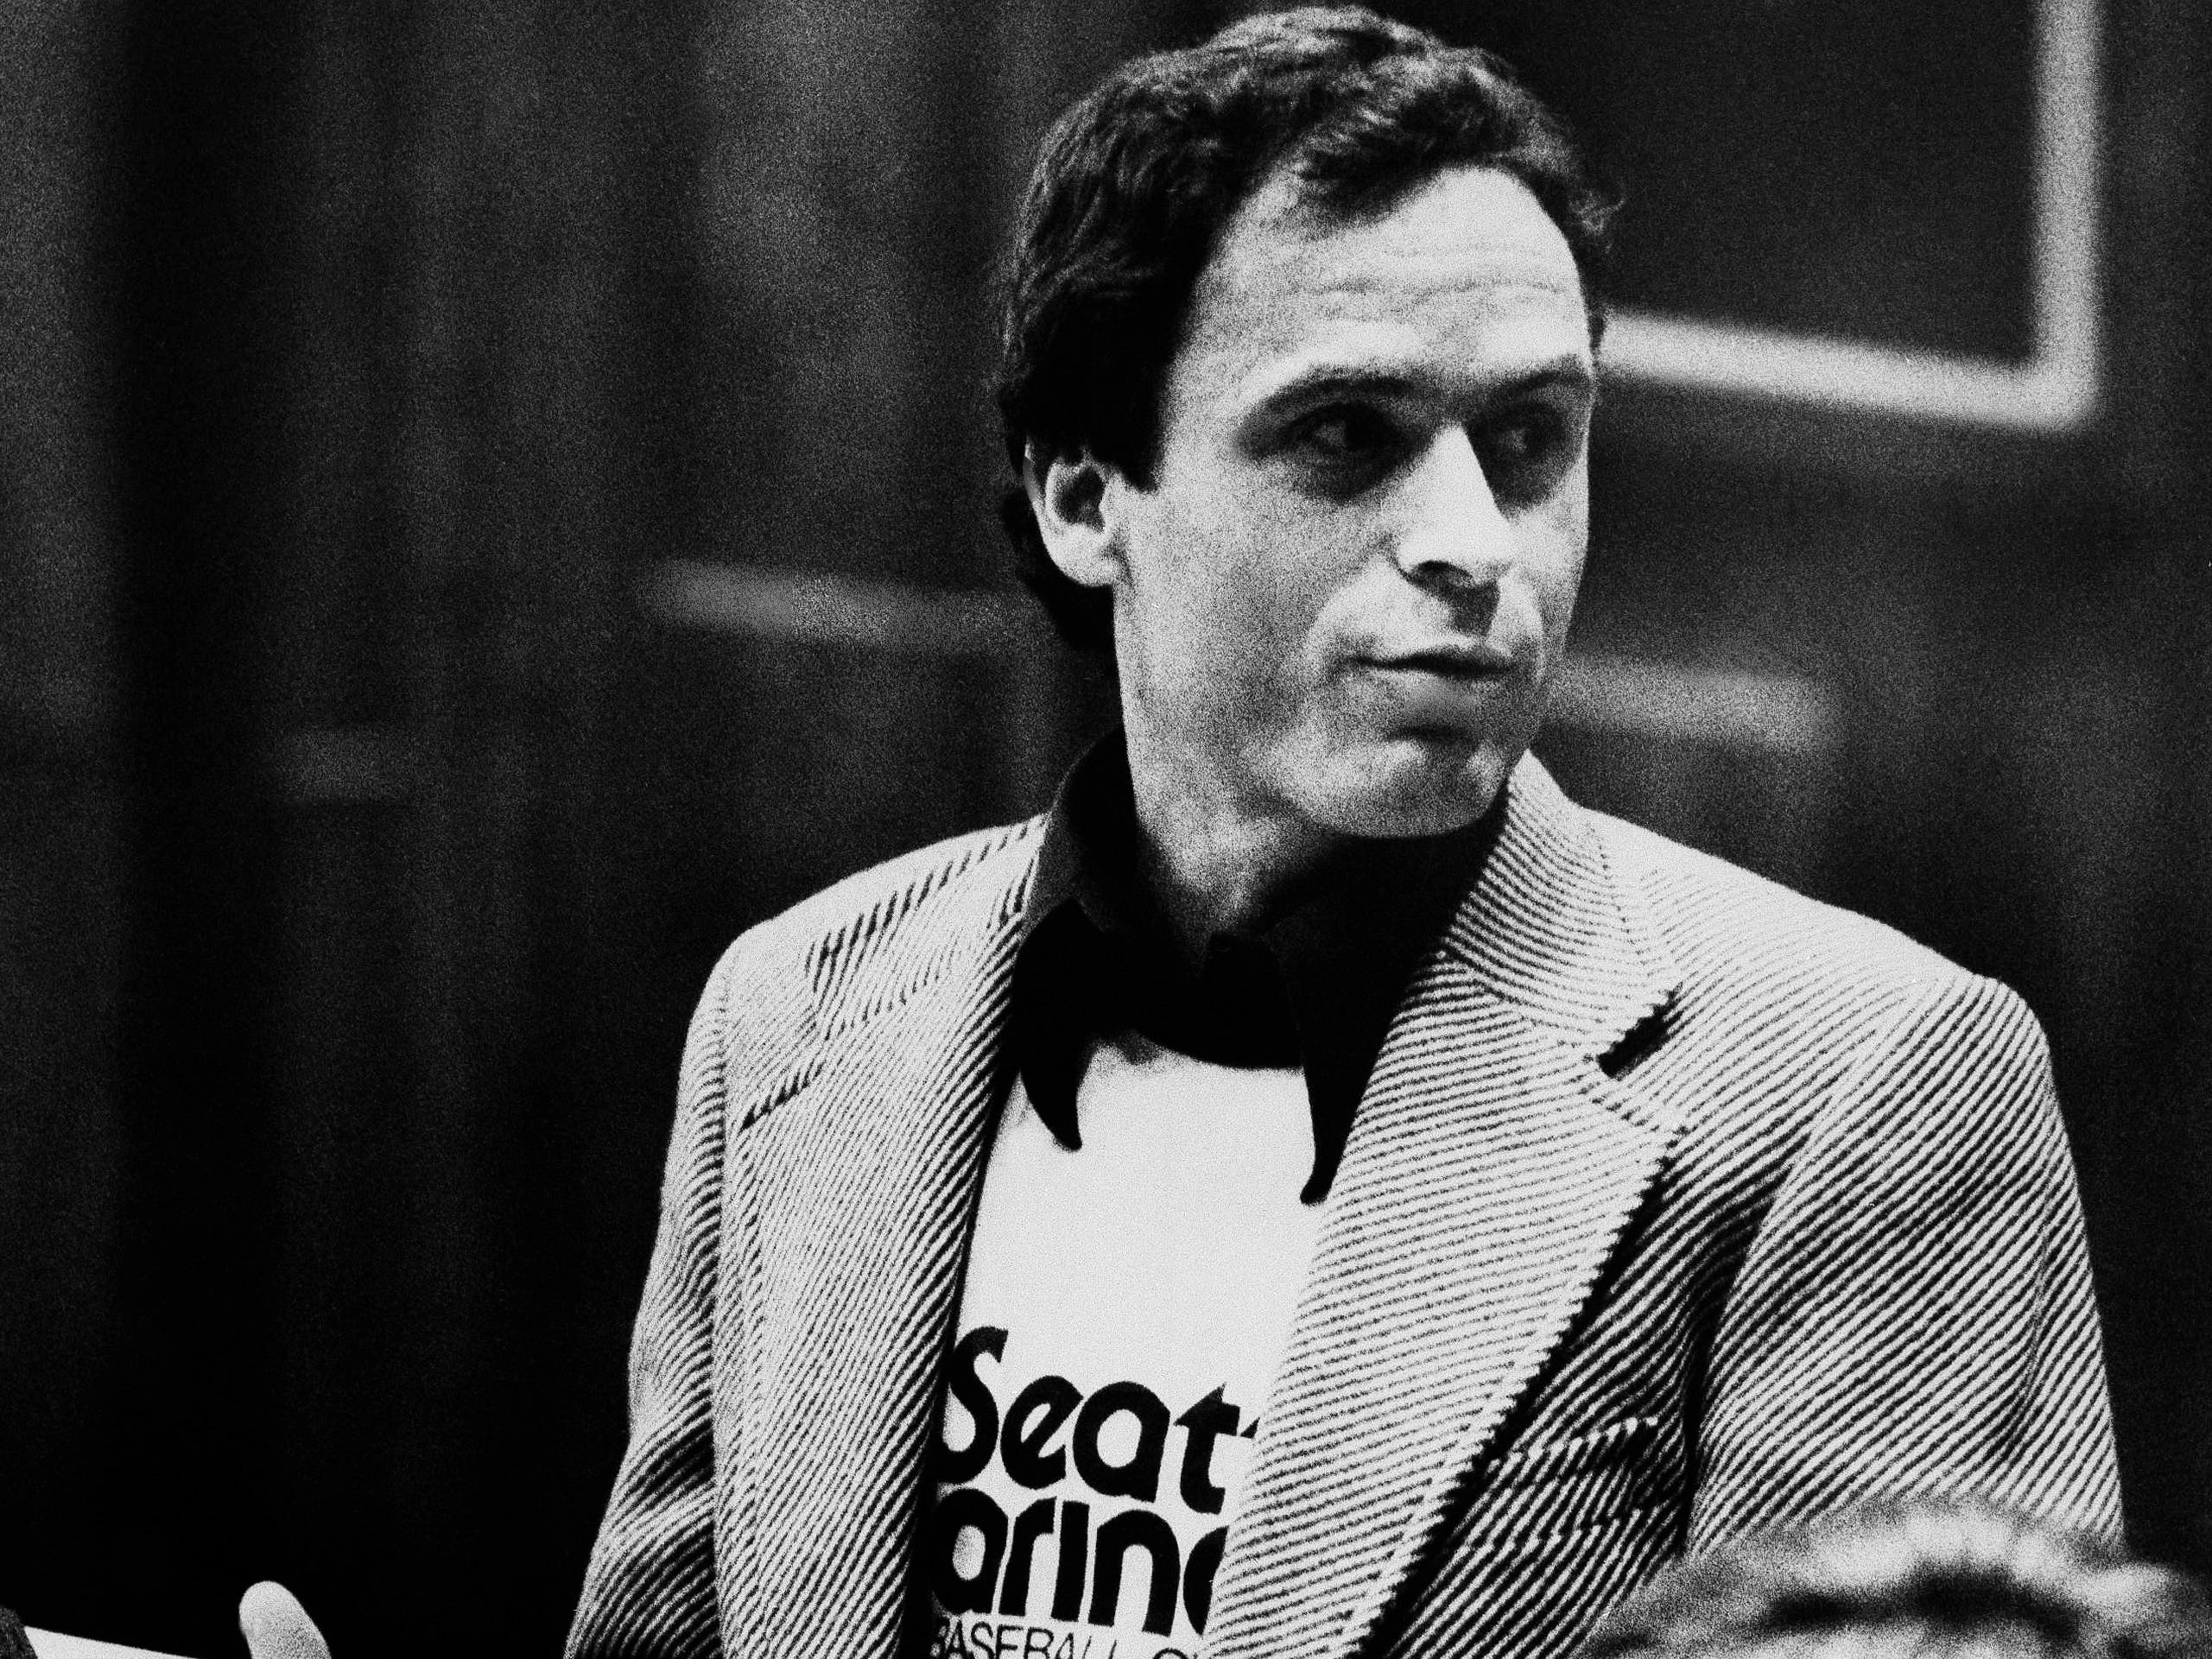 Accused murderer Theodore Bundy, wearing a Seattle Marines T-shirt, presenting his own motions in the Miami courtroom, July 6, 1979, where he is on trial for the murders of two Florida State University coeds in January 1978.